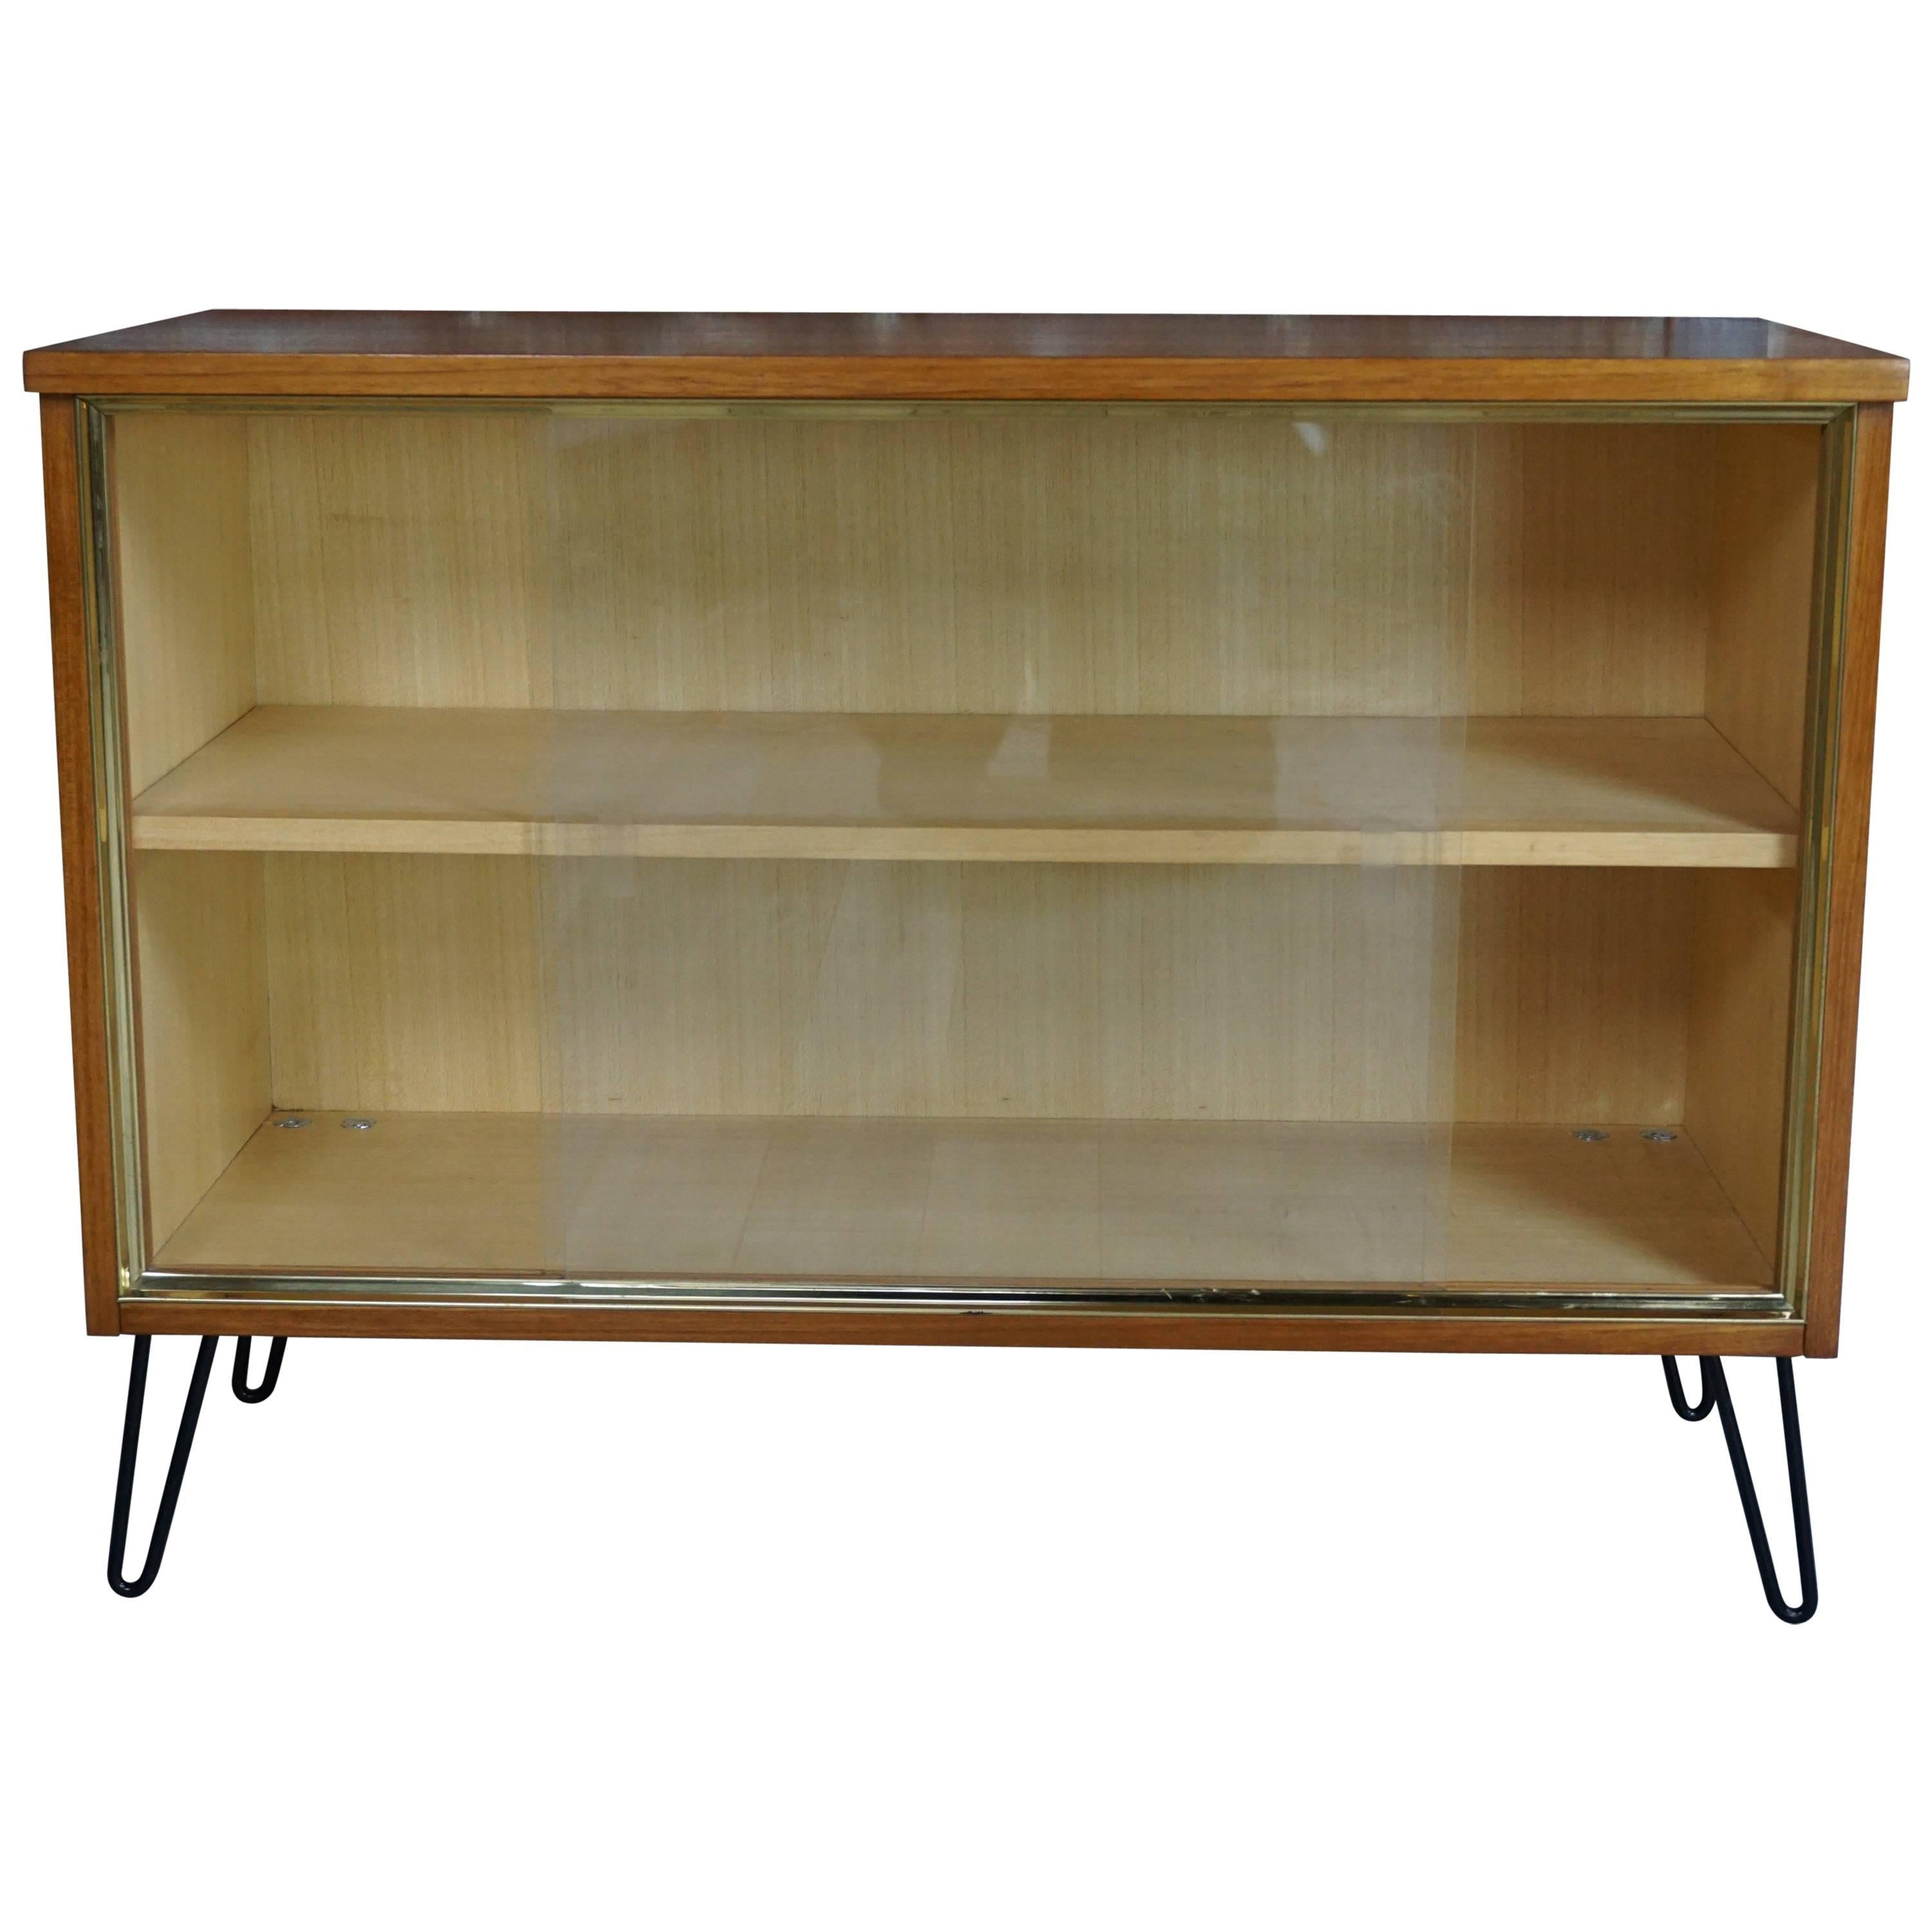 Charmant 1950s Teak And Glass Display Case Cabinet For Sale